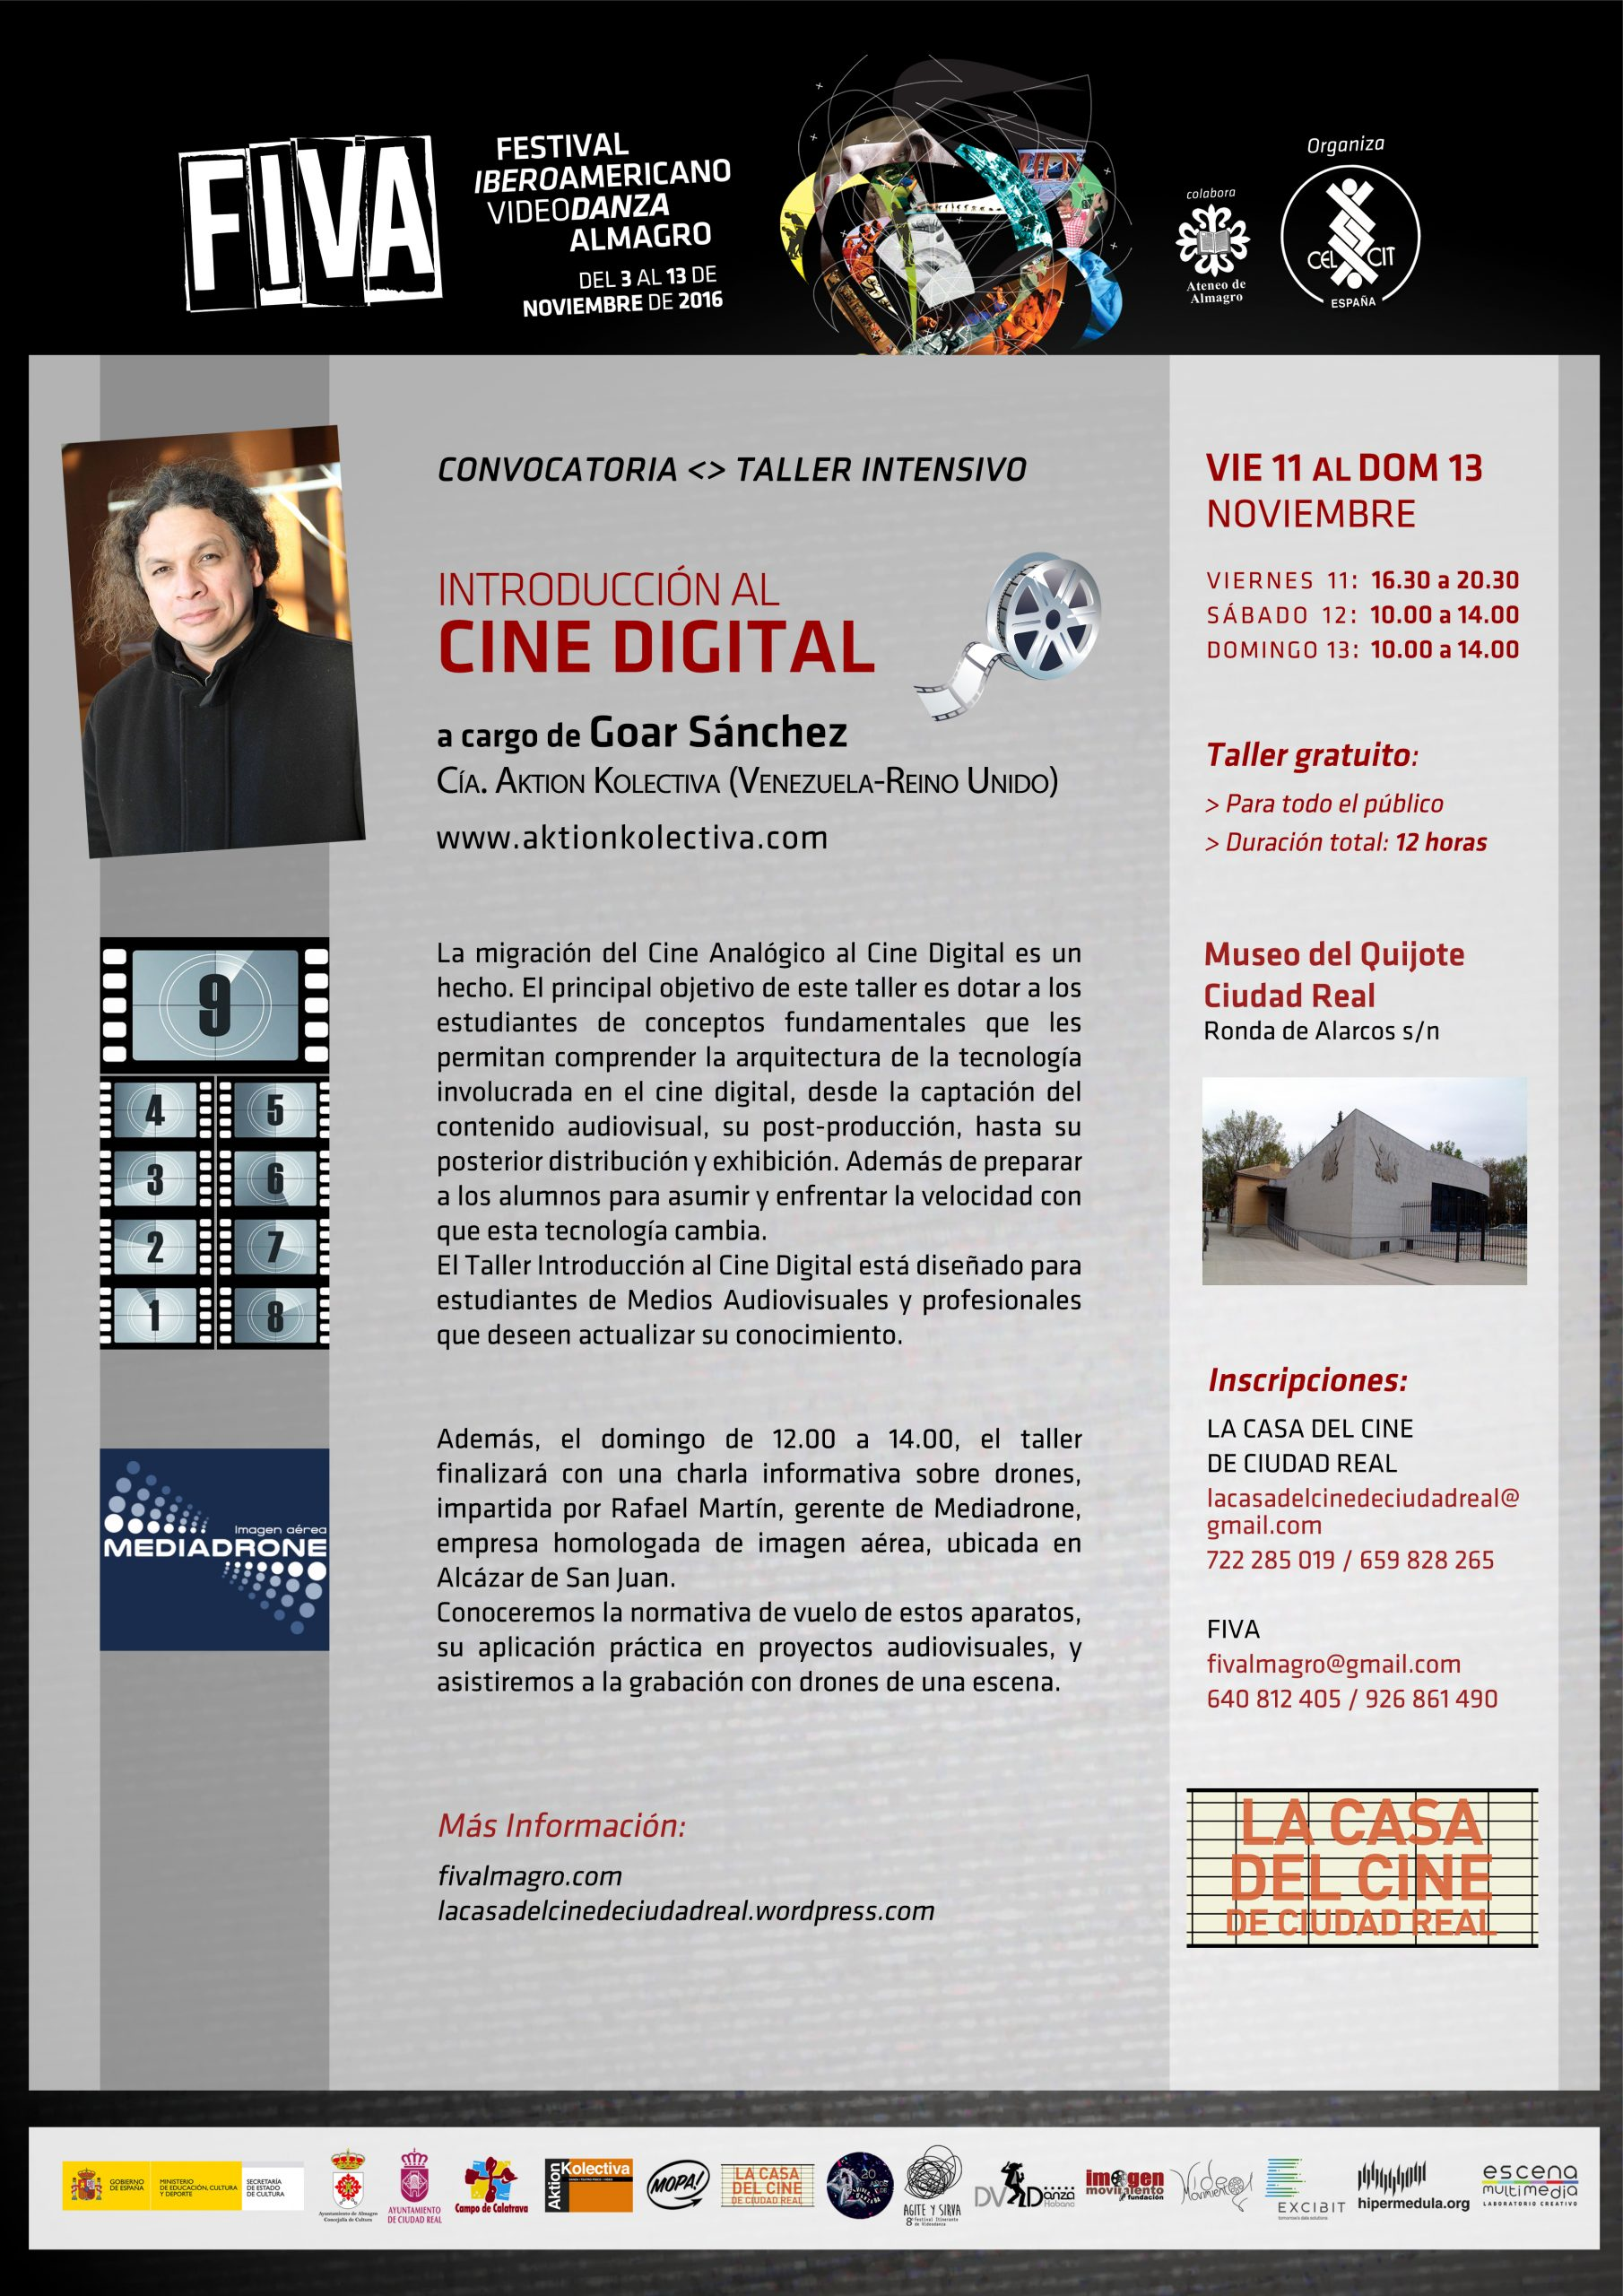 Taller Intensivo de Cine Digital